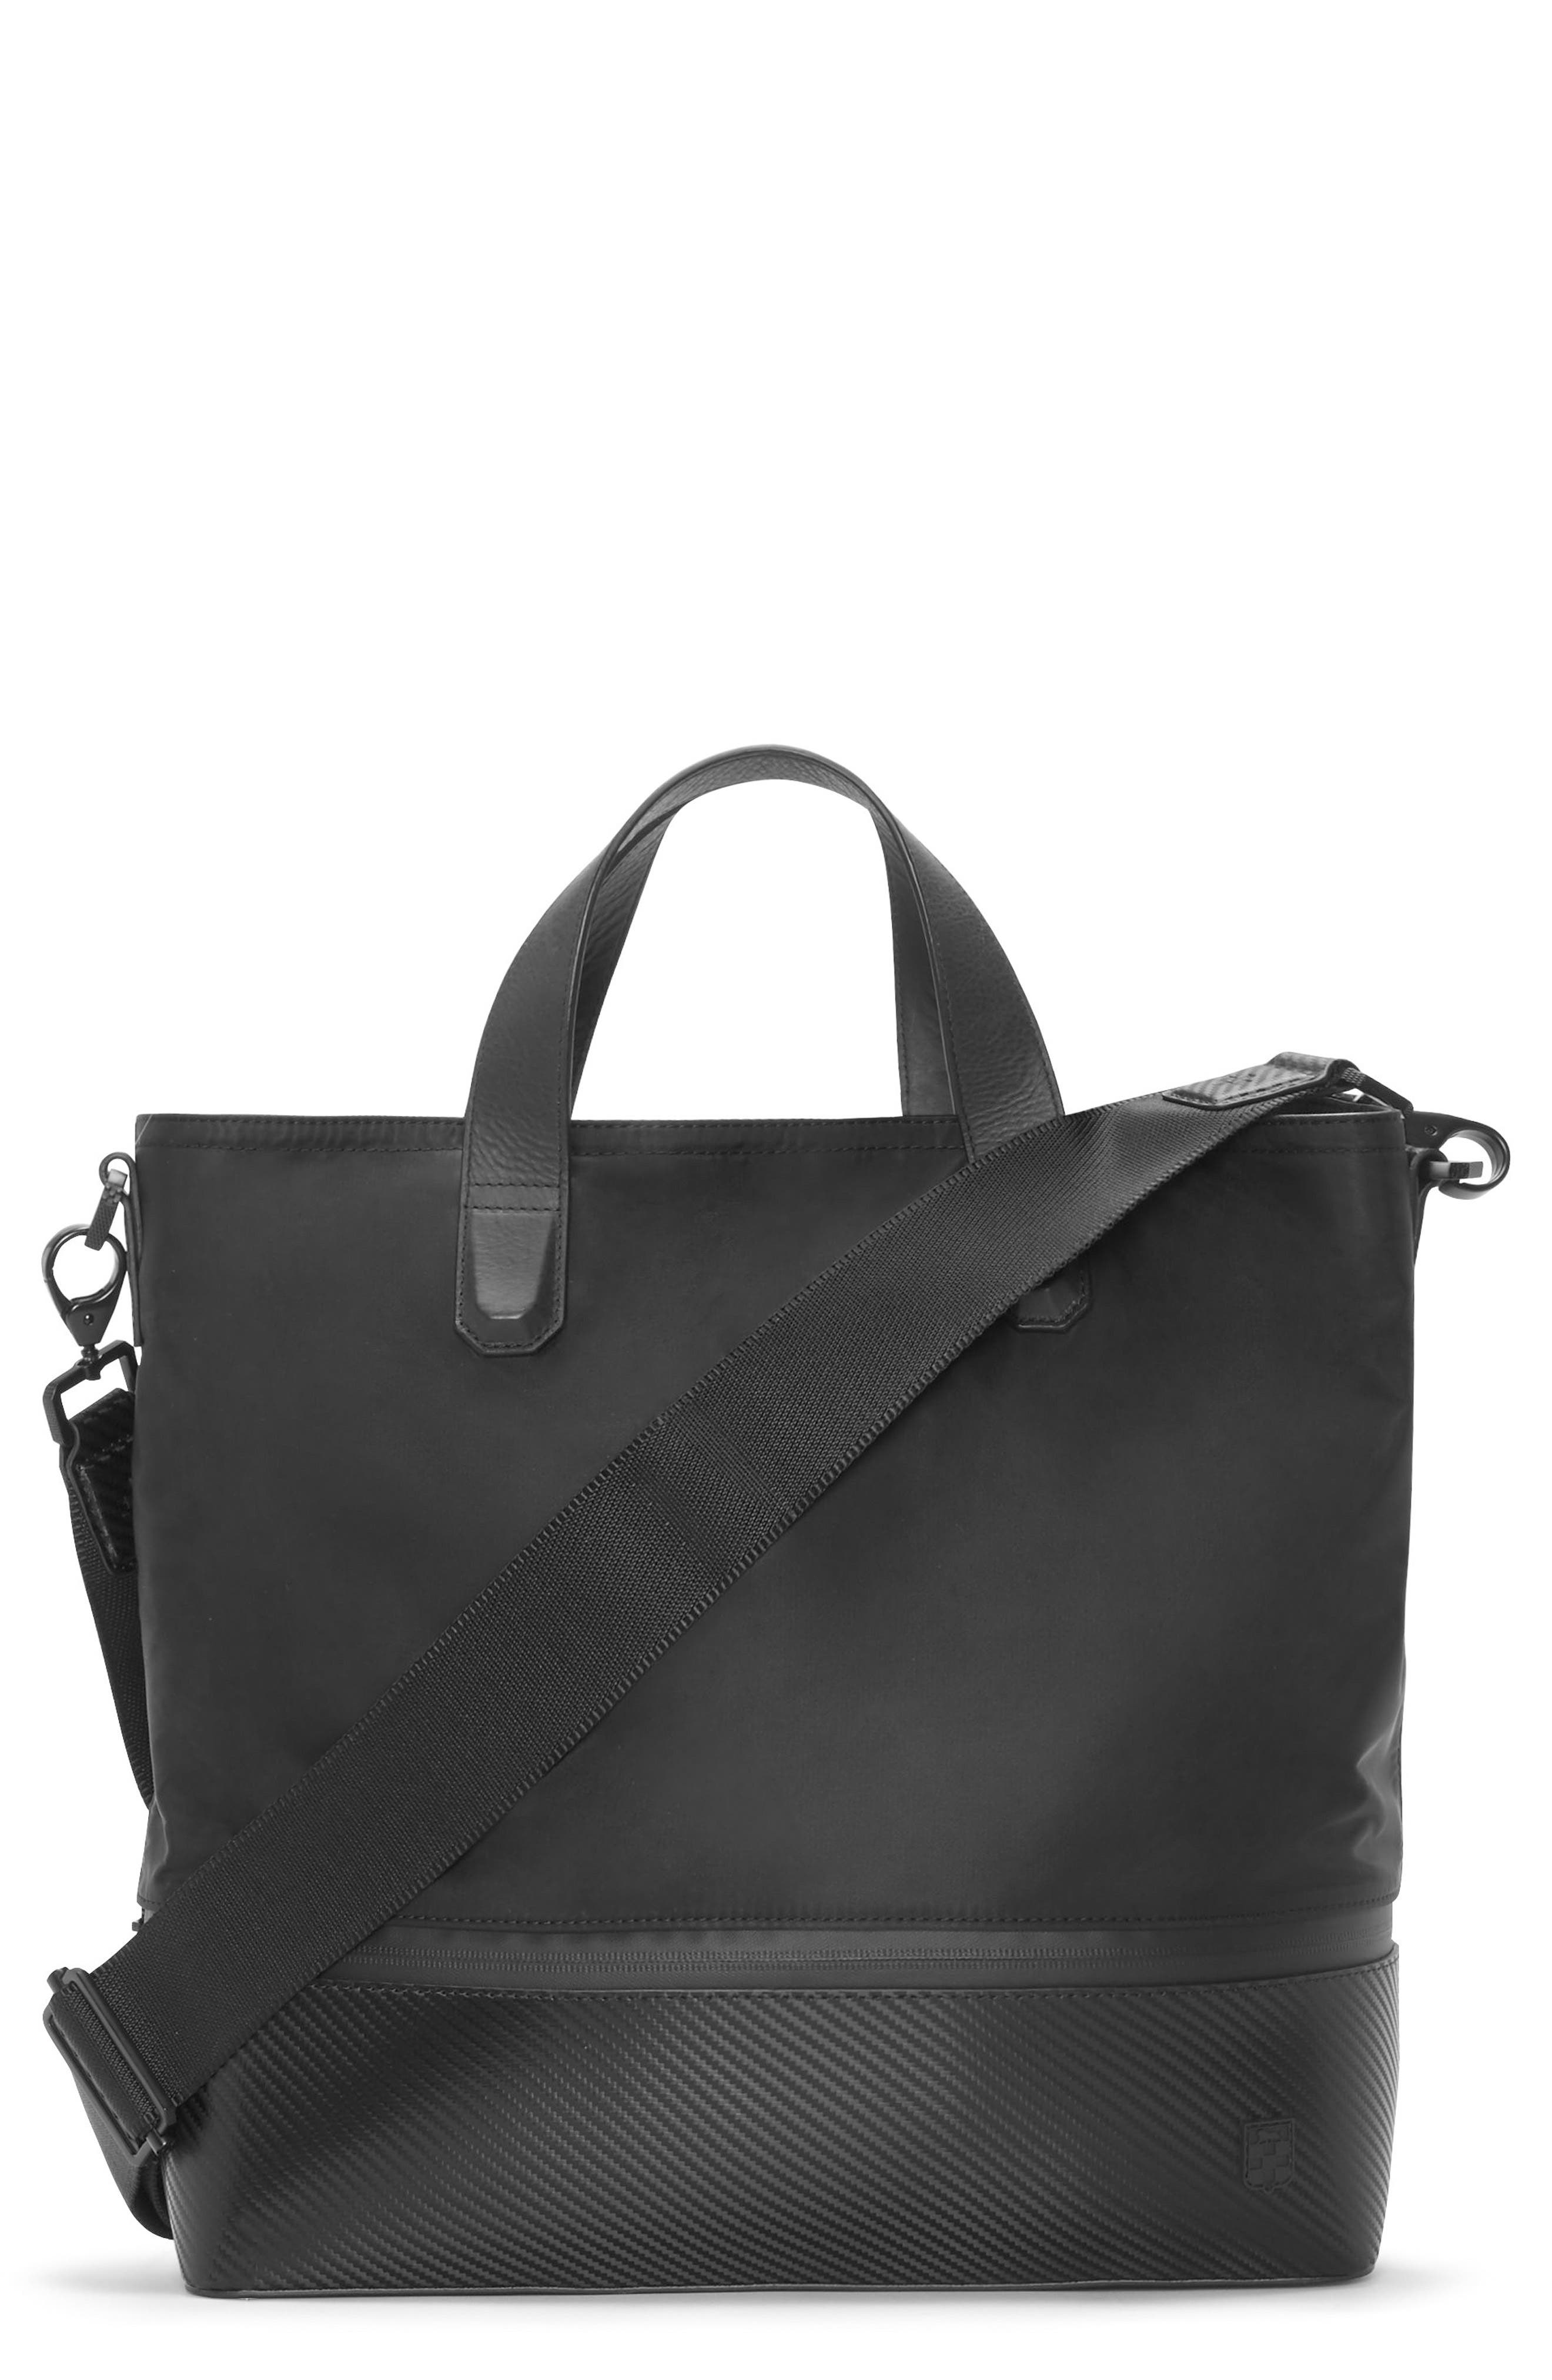 Vince Camuto Lupe Tote Bag